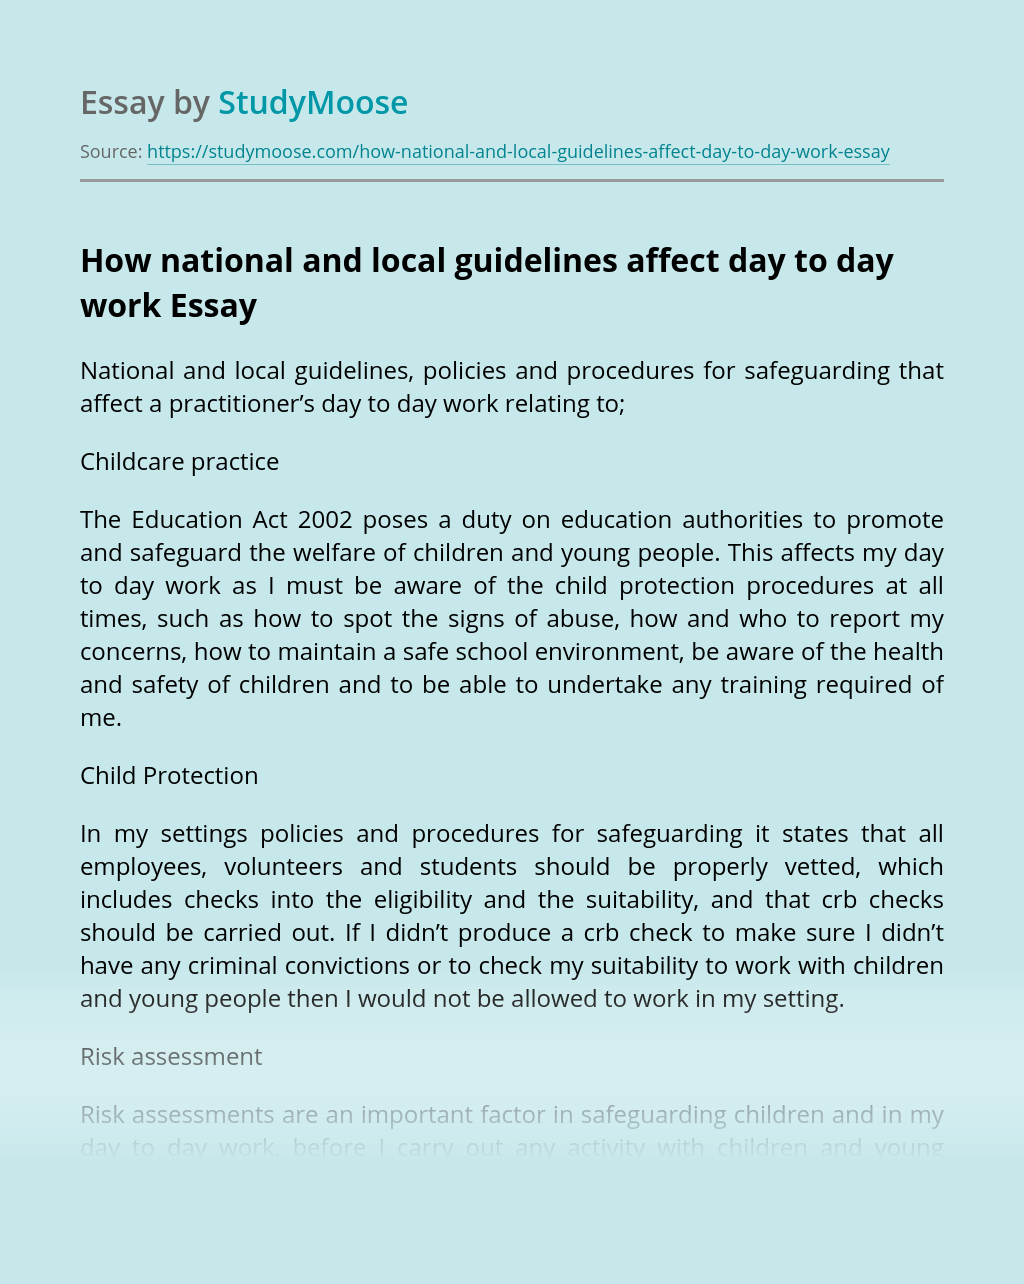 How national and local guidelines affect day to day work